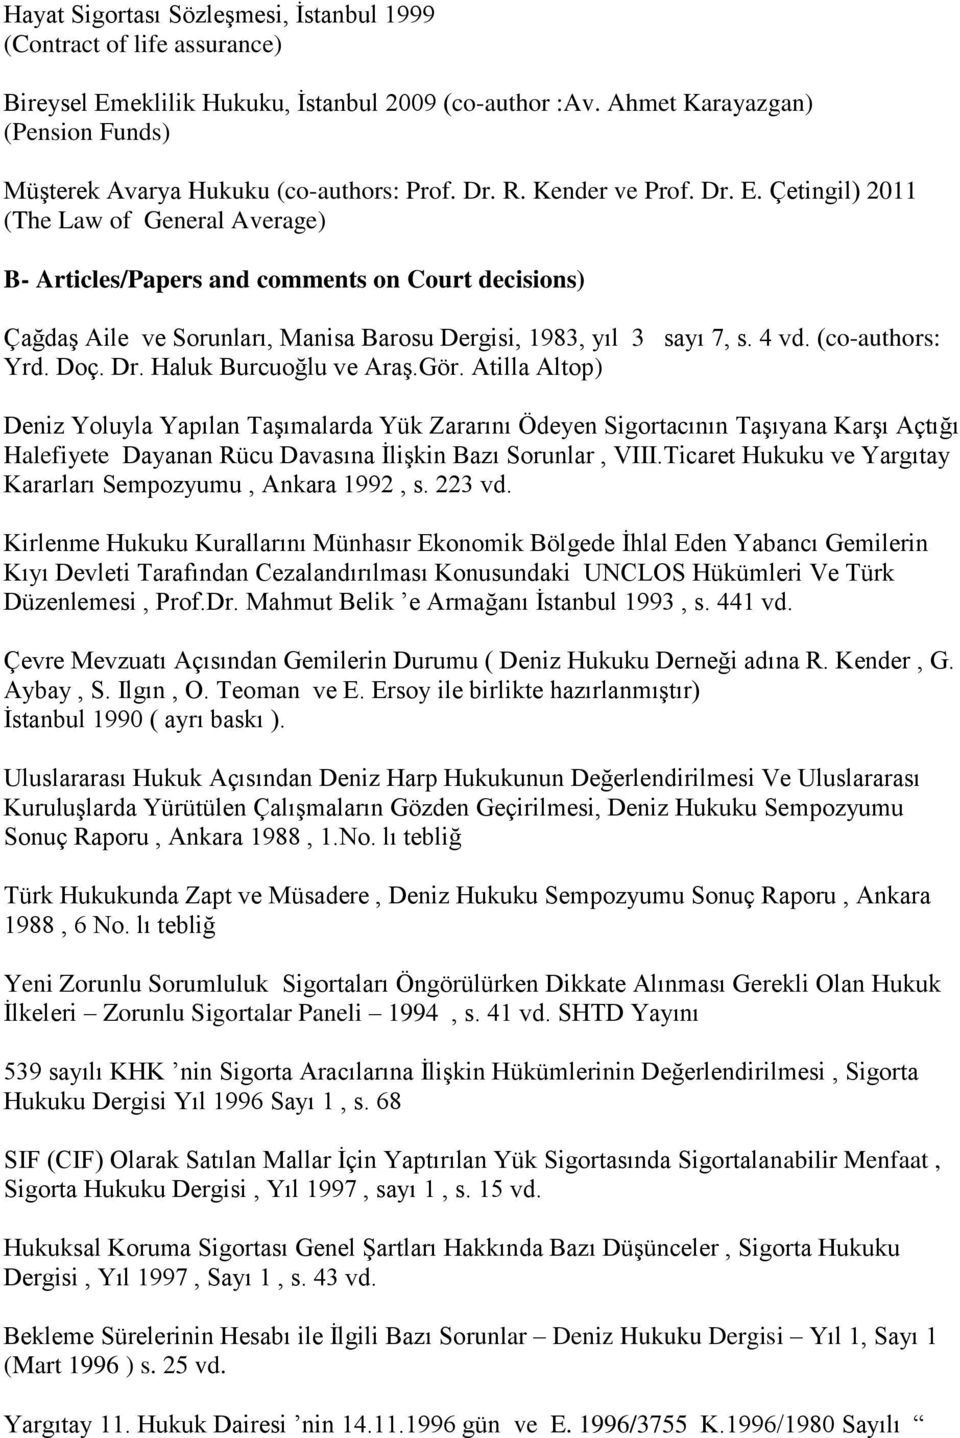 Çetingil) 2011 (The Law of General Average) B- Articles/Papers and comments on Court decisions) Çağdaş Aile ve Sorunları, Manisa Barosu Dergisi, 1983, yıl 3 sayı 7, s. 4 vd. (co-authors: Yrd. Doç. Dr.